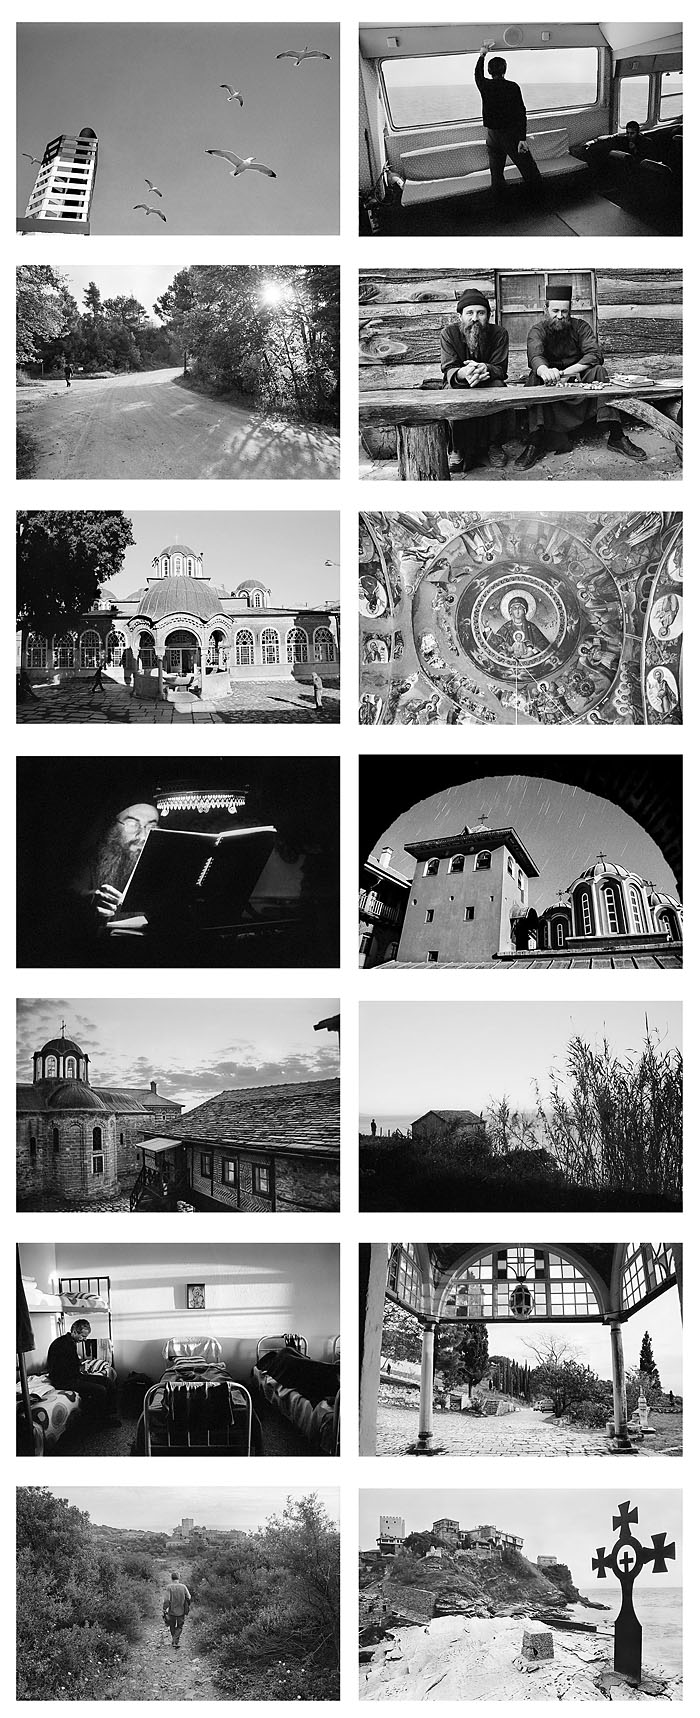 Full Size of Nw Photo Essay About Mt Athos Net Photography Forums Tzalavras Synthesis Paper